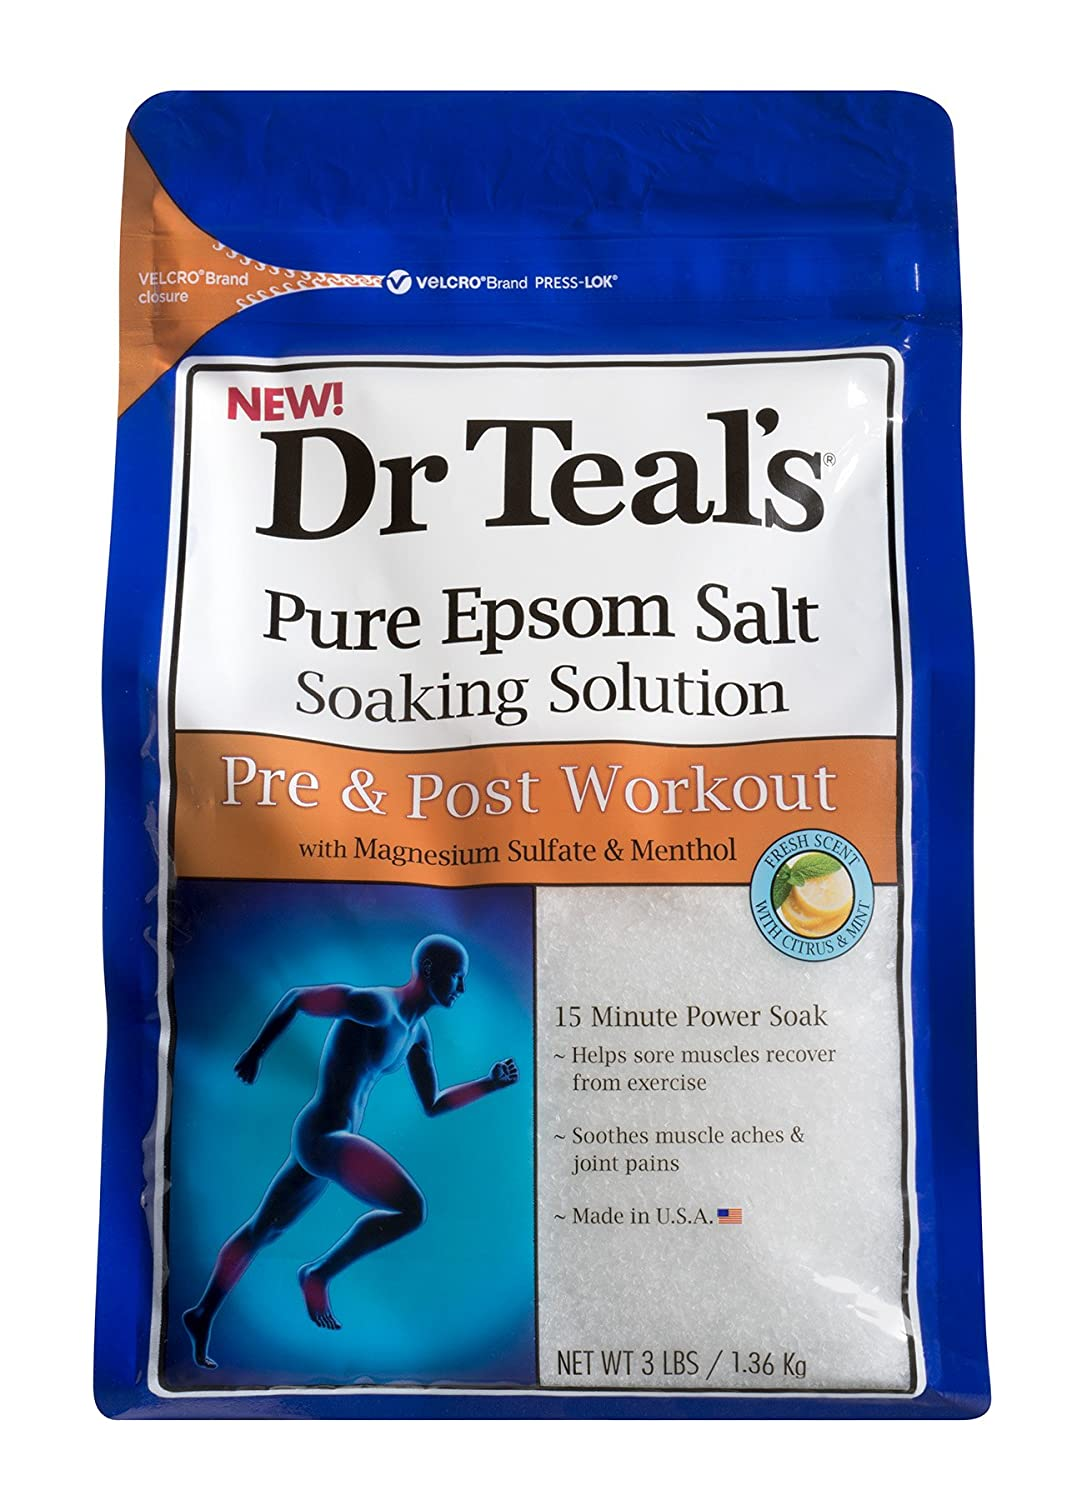 Dr Teal's Pure Epsom Salt Soaking Solution for Pre and Post Workout with Magnesium Sulfate & Menthol, 1.36 kg 04364-4PK